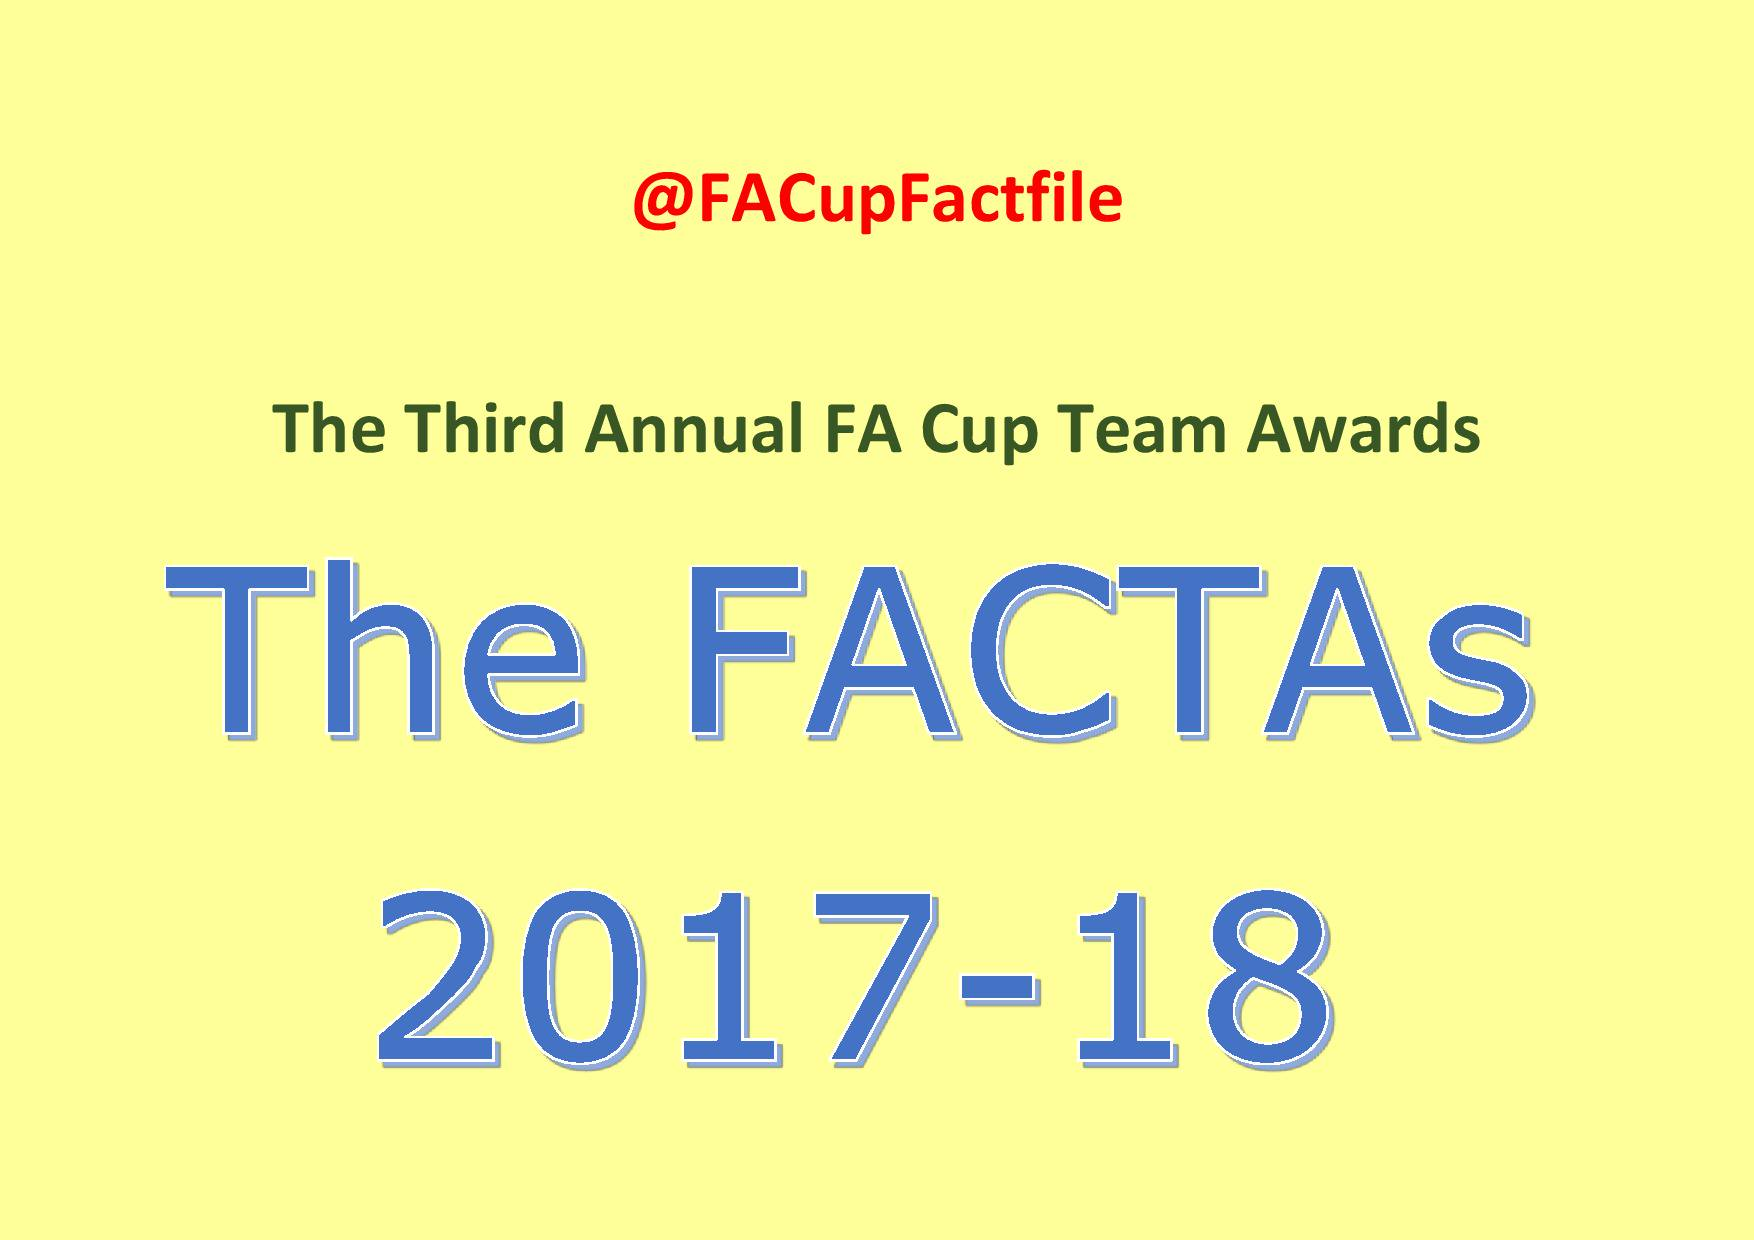 Fa vase cup results best vase decoration 2018 2017 18 buildbase fa vase fourth round fixtures and form reviewsmspy